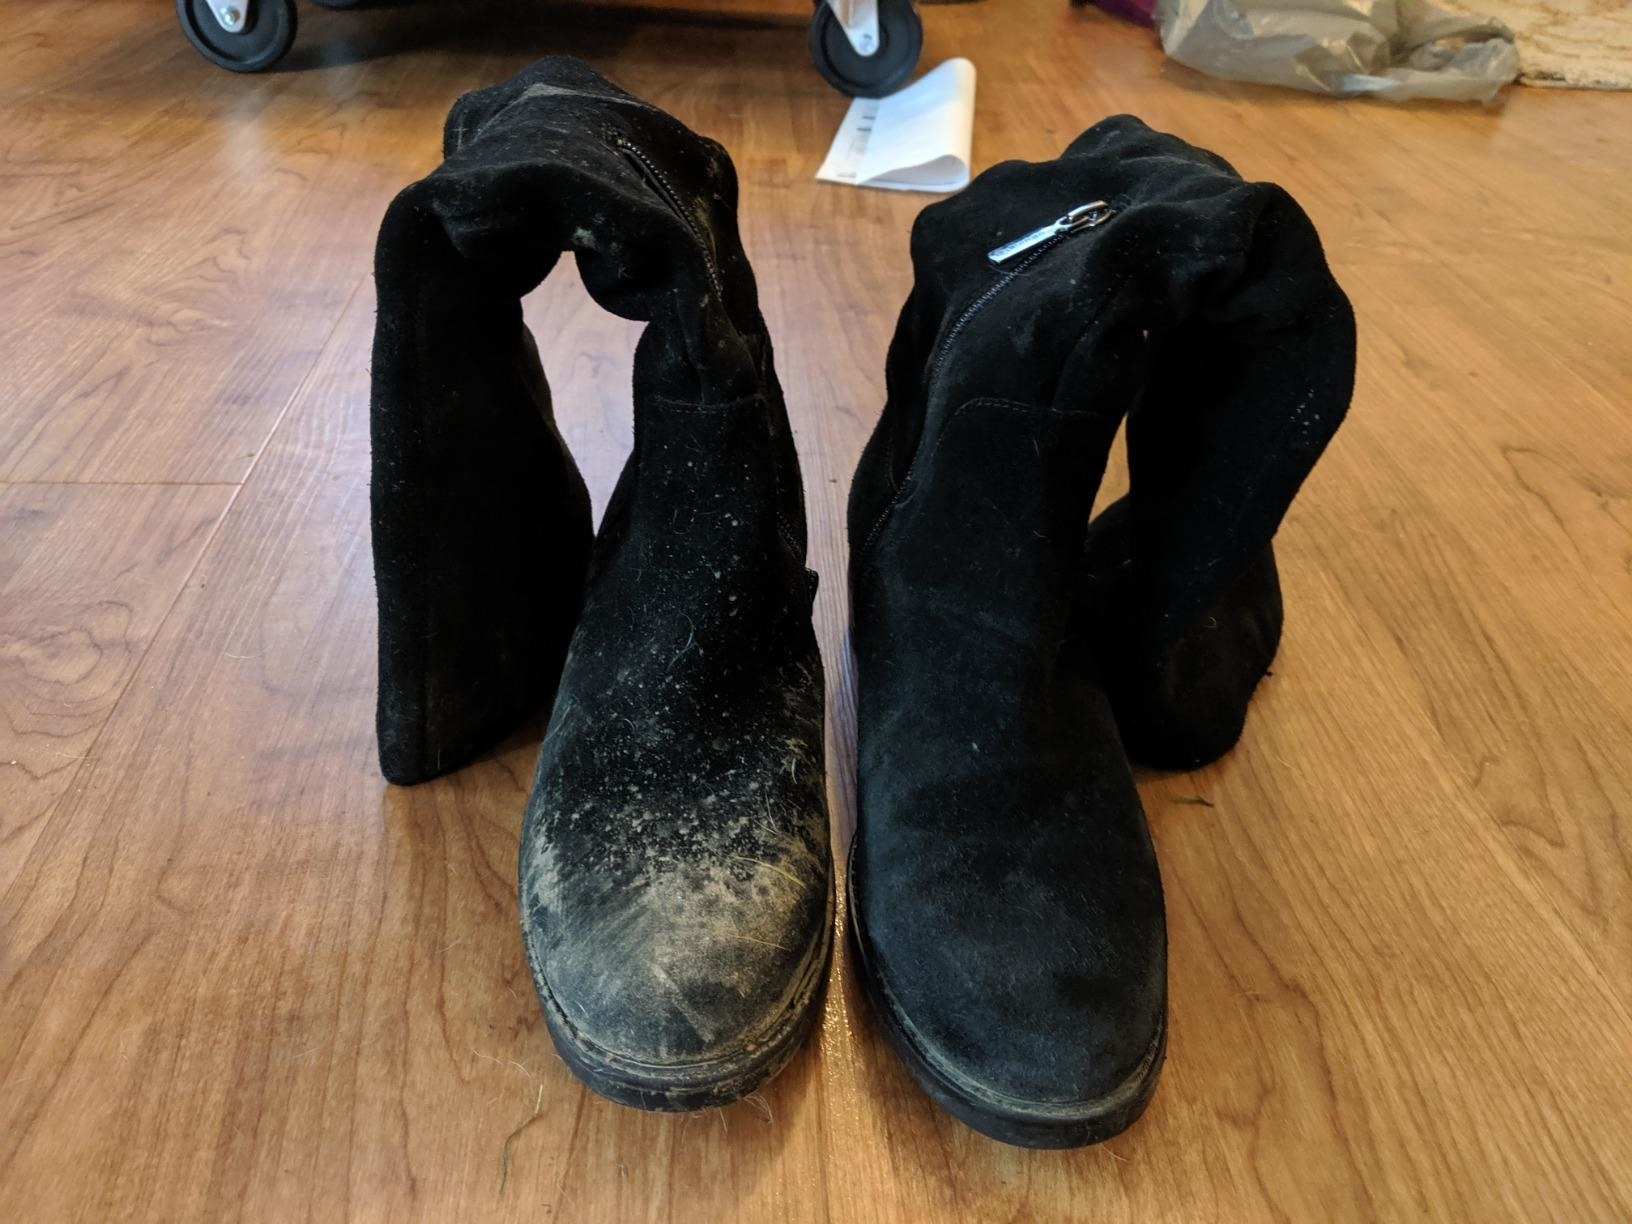 A reviewer's black suede boots: the left covered in light brown dirt, the right completely clean and new-looking